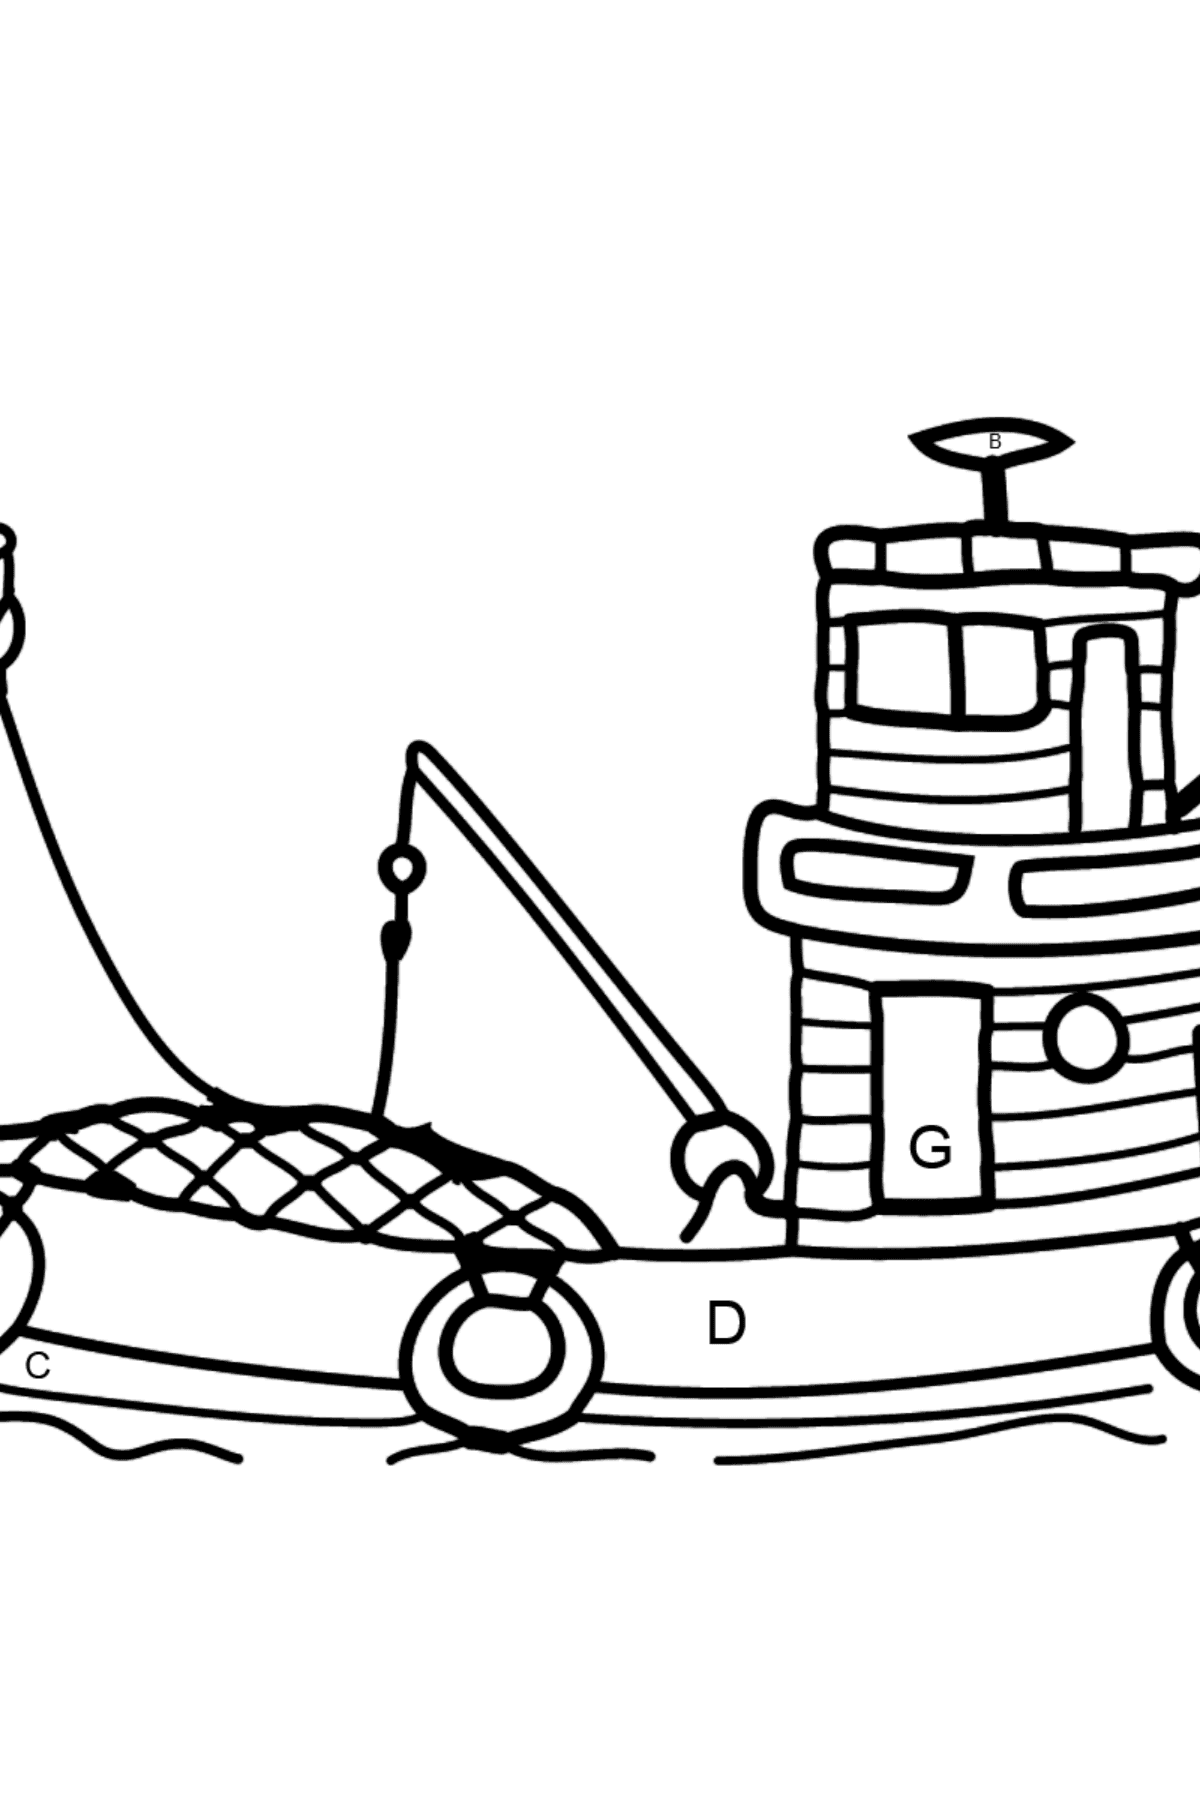 Coloring Page - A Fishing Boat - Coloring by Letters for Kids